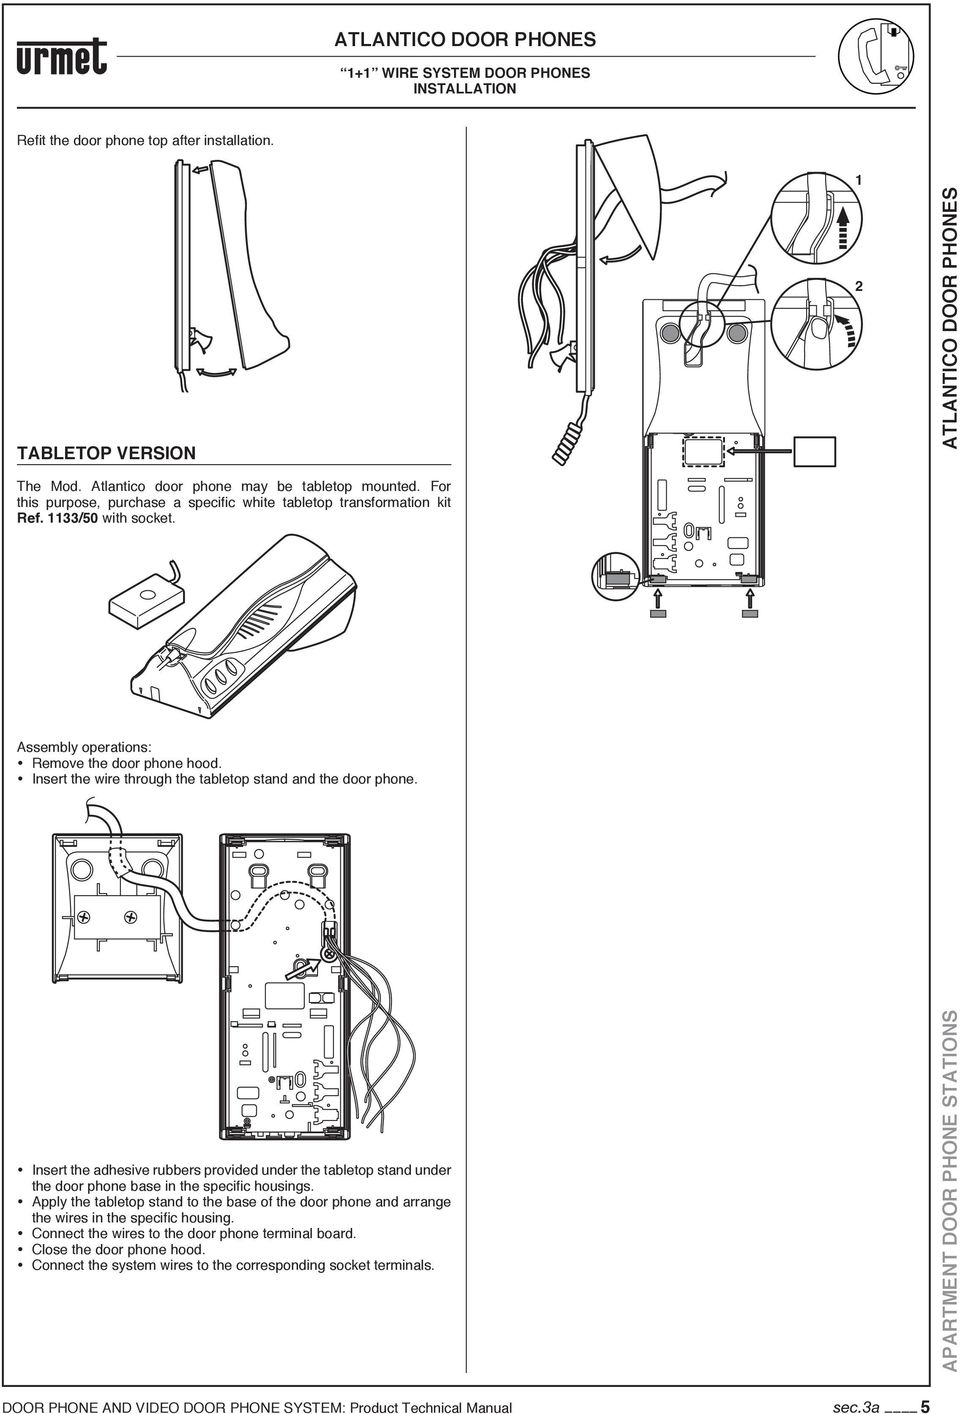 Nortel Door Phone Wiring Diagram Wiring Diagram